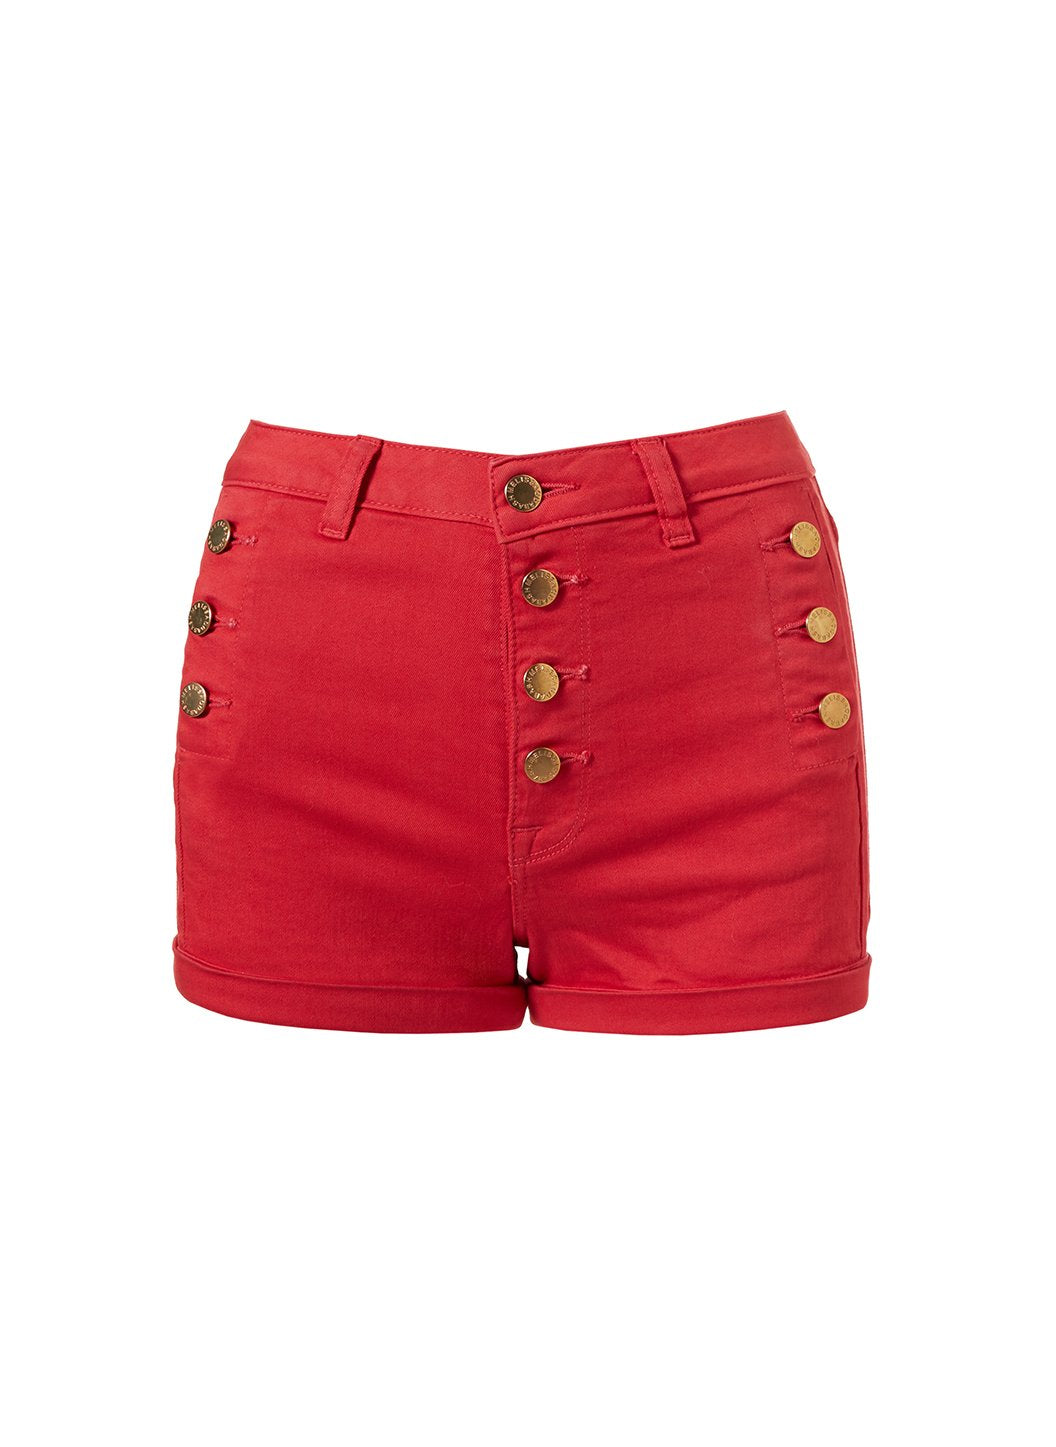 Yanni Red Shorts